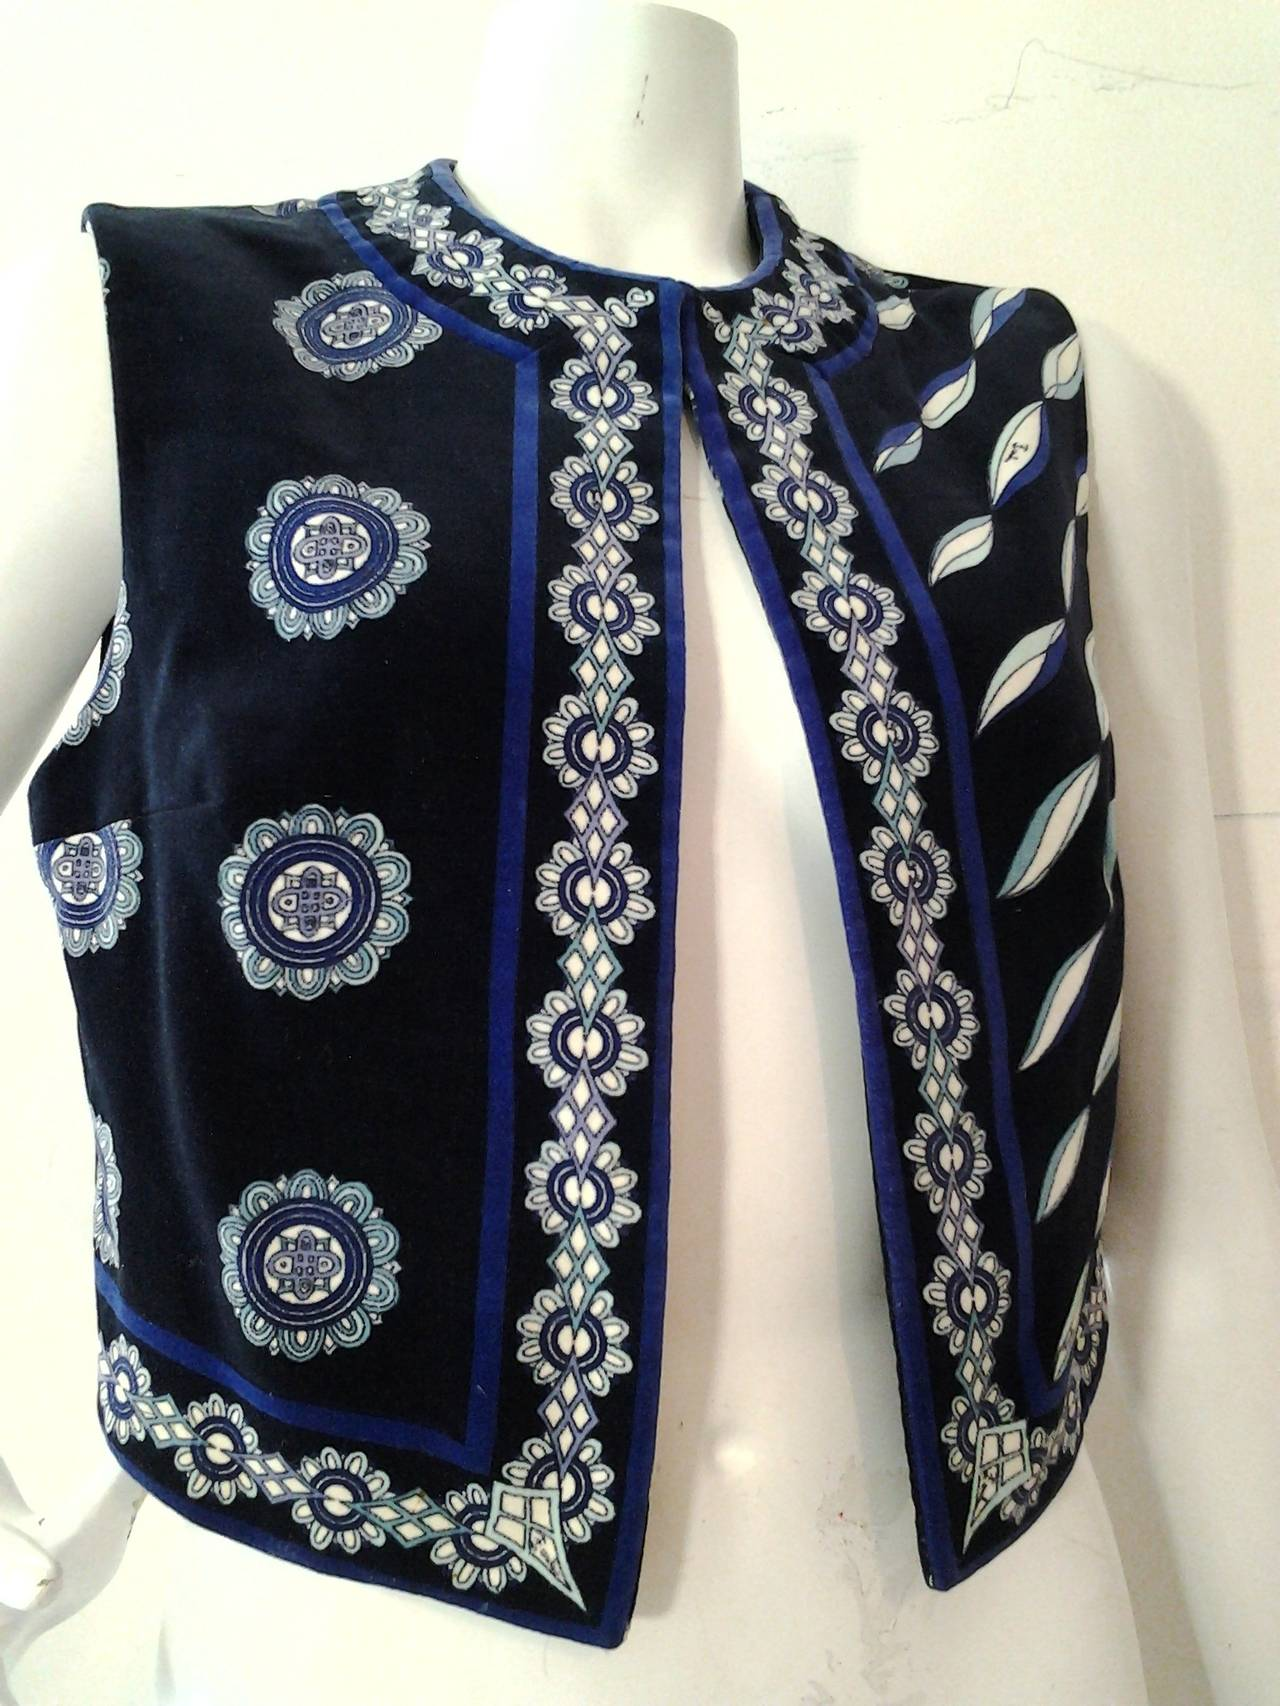 1960s Emilio Pucci Cotton Velveteen Mod Vest In Blues, Black and White 4